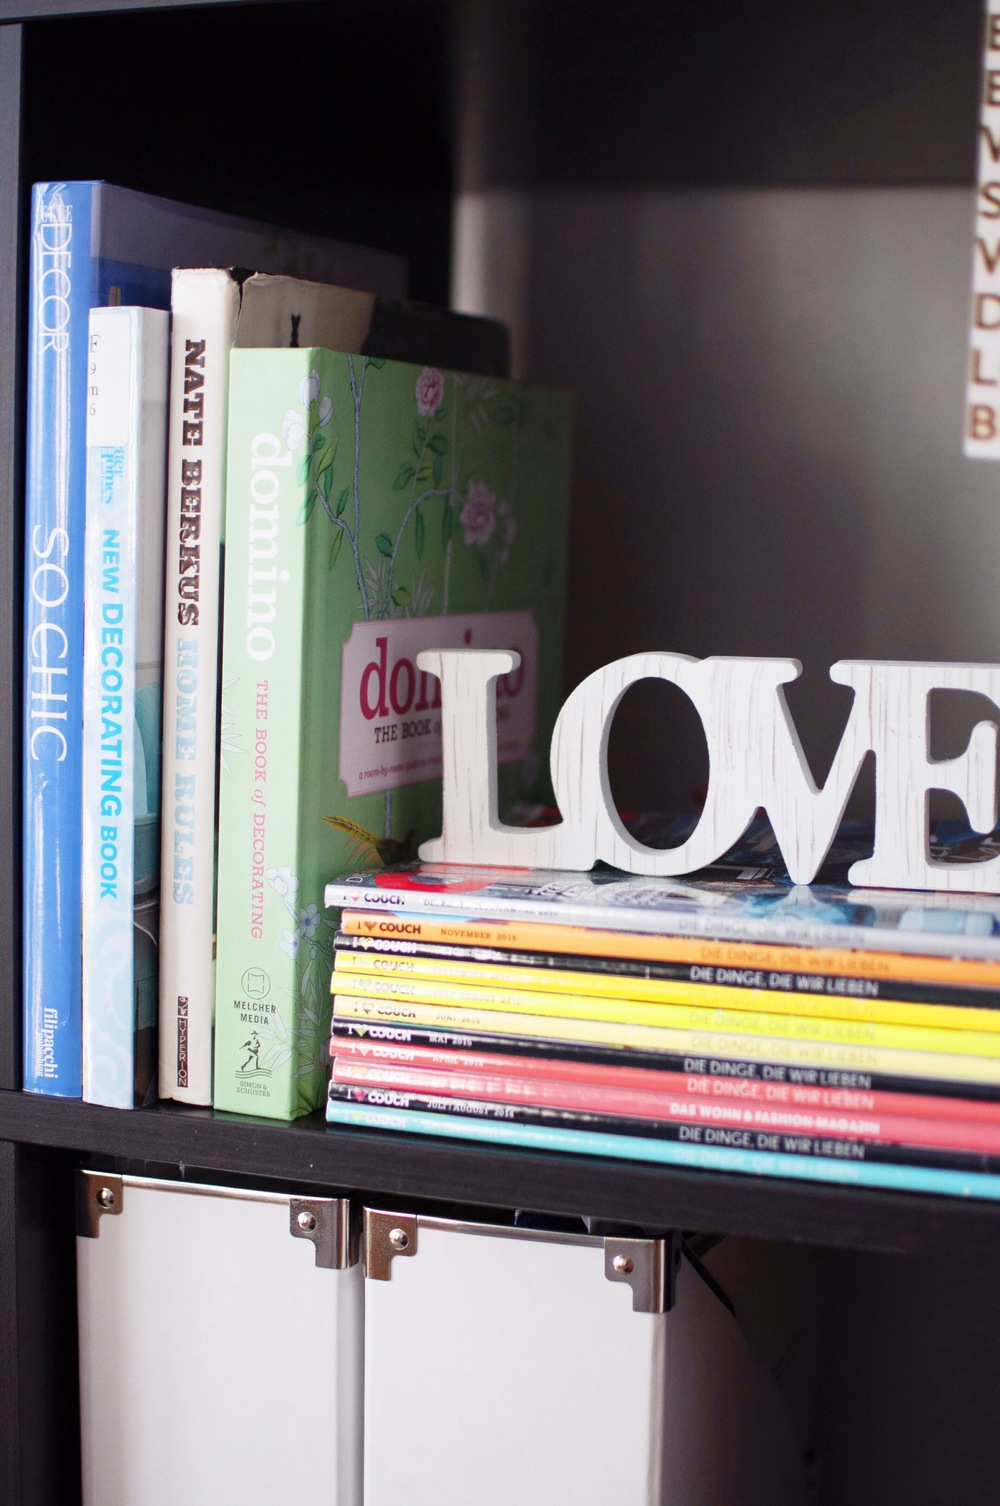 Some of my favorite decorating books, including favorite decor/fashion magazine, Couch